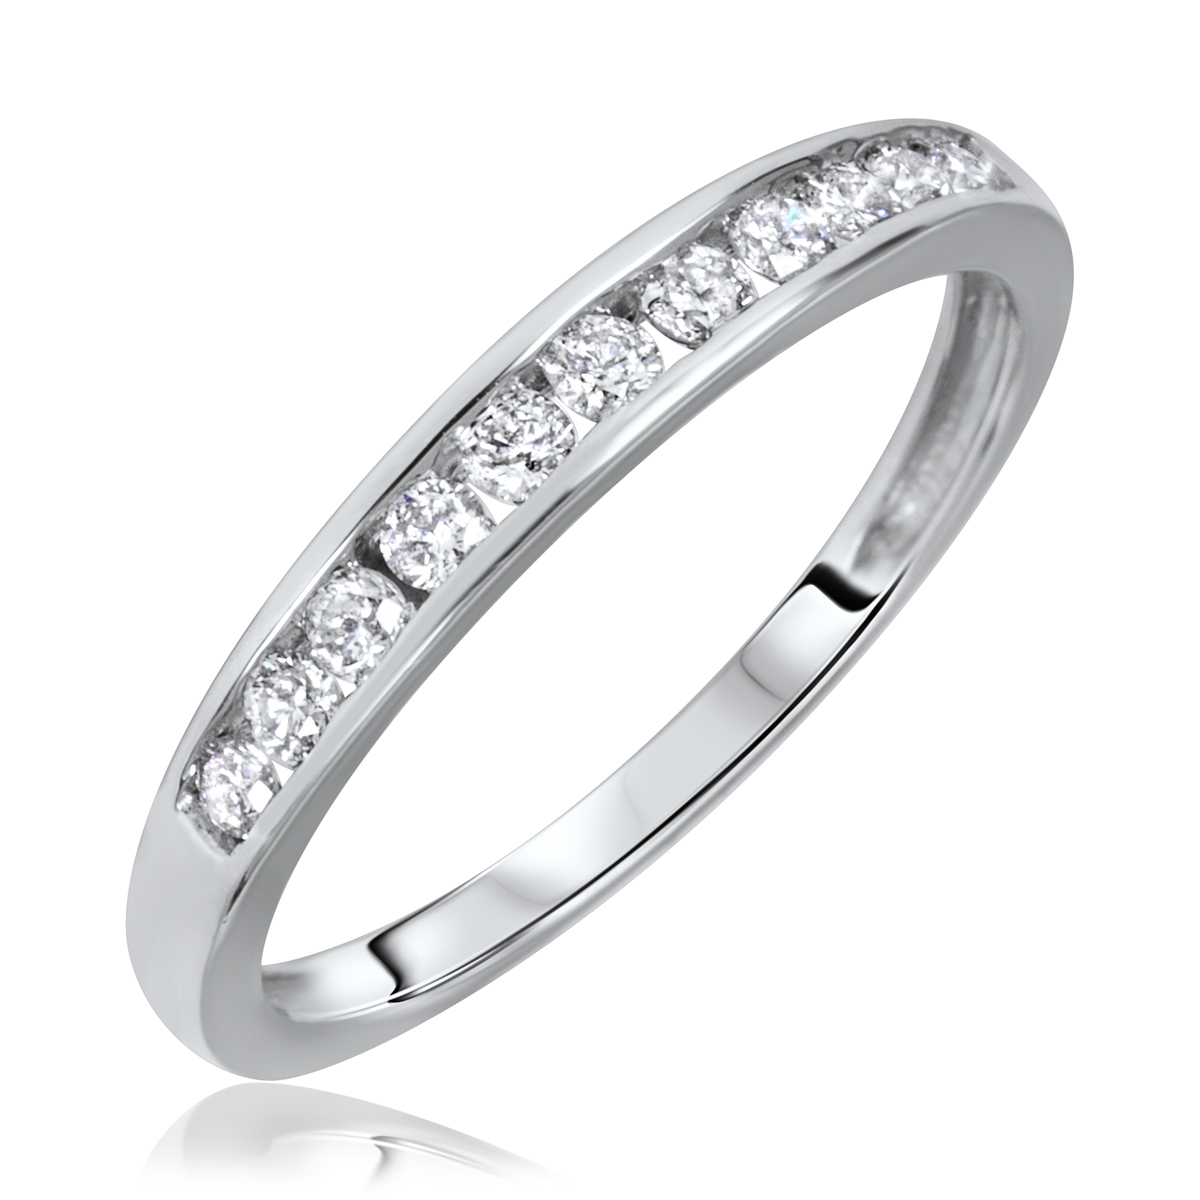 1 2 Carat T W Round Cut Diamond His And Hers Wedding Band Set 10K White Gold